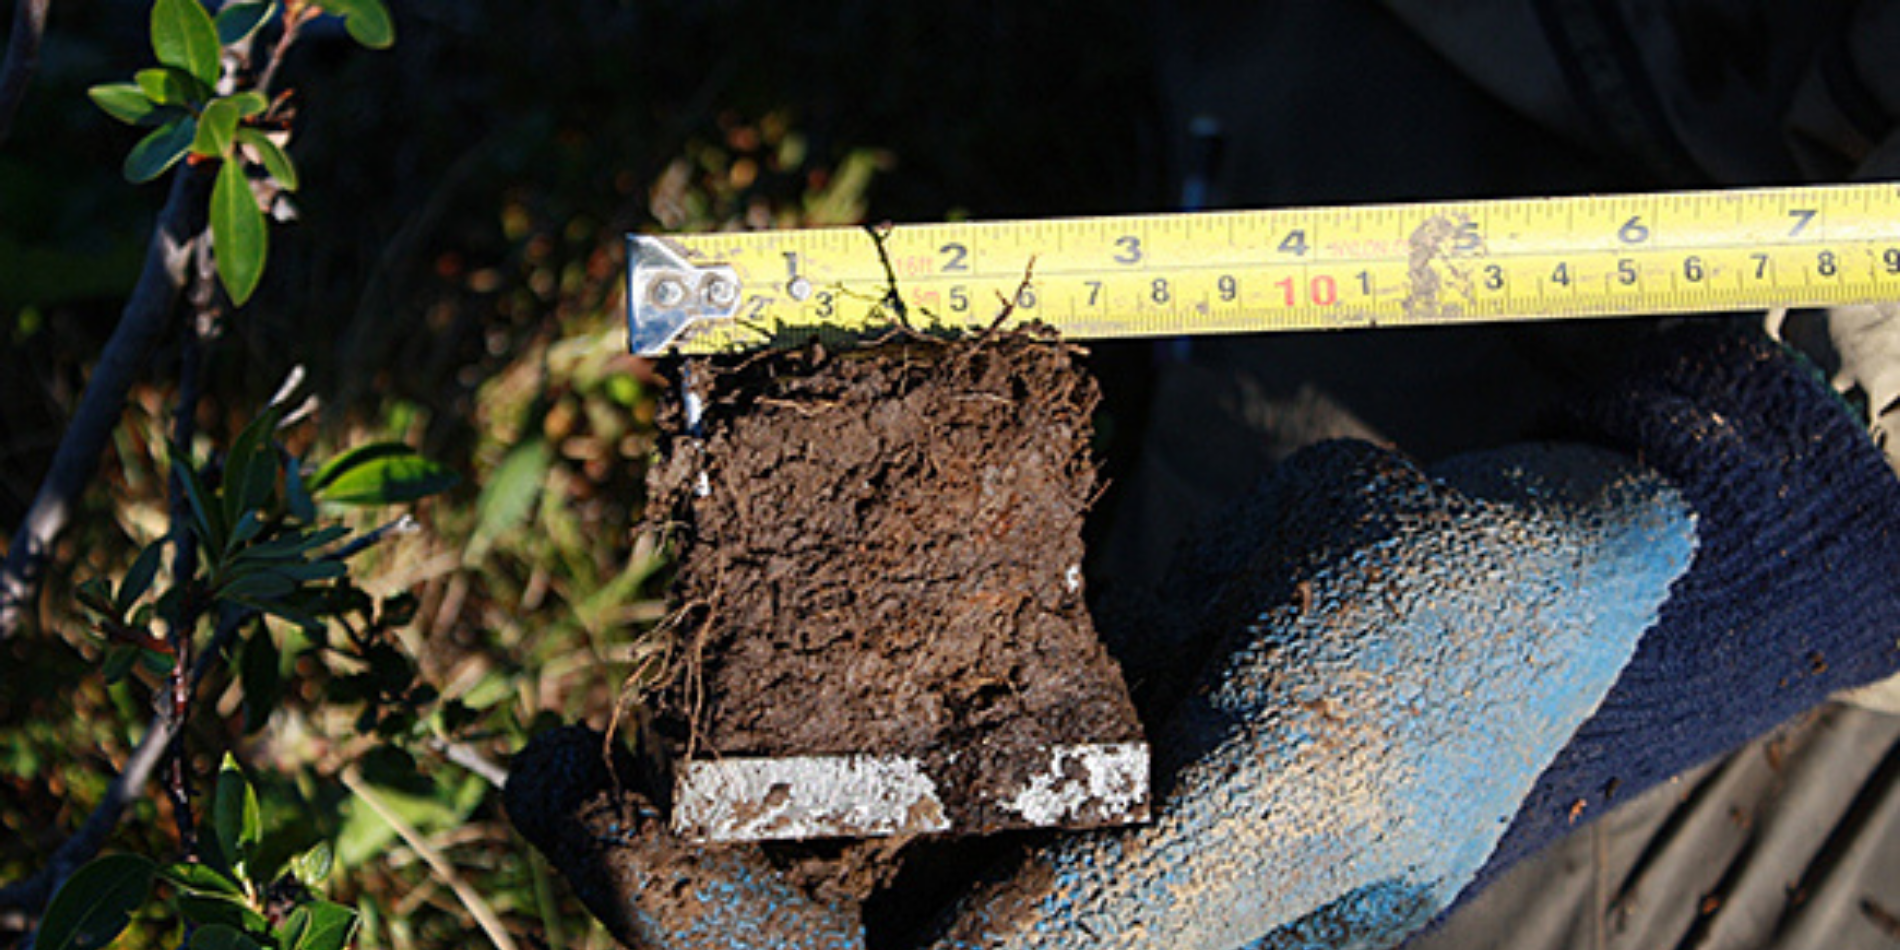 A measuring tape is held up to a hunk of dirt